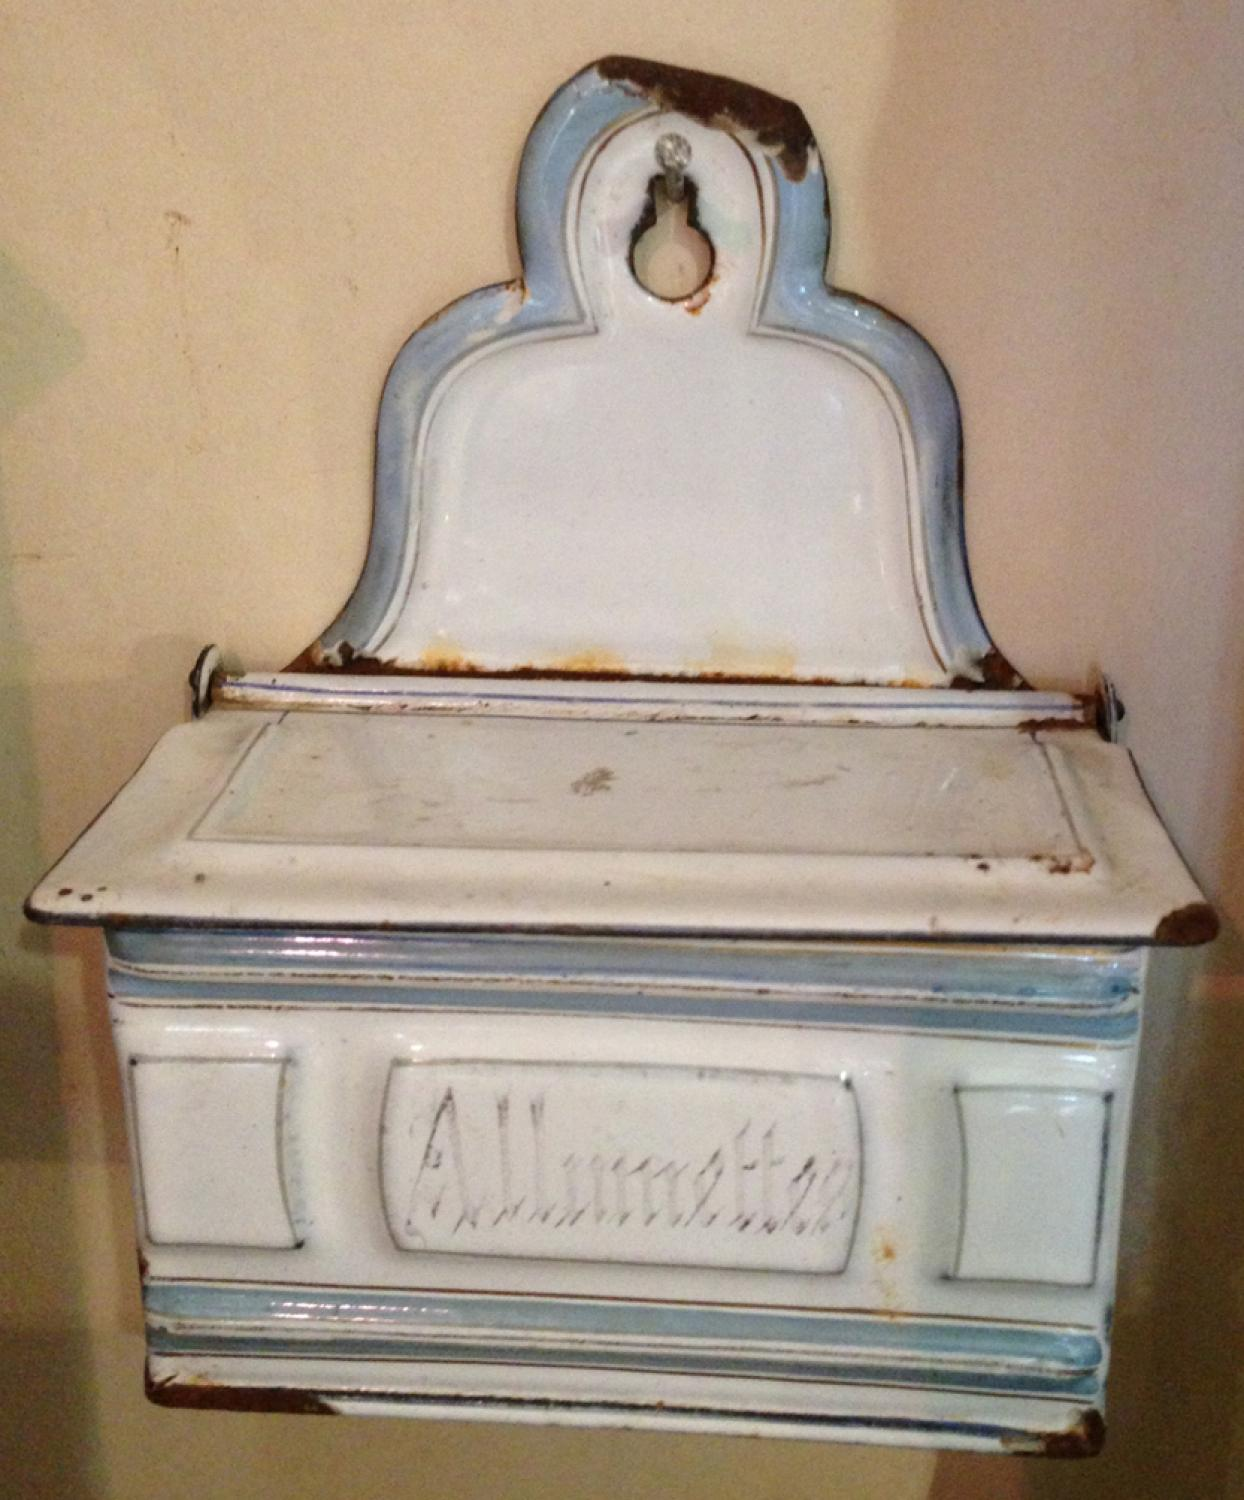 French Enamel Match holder